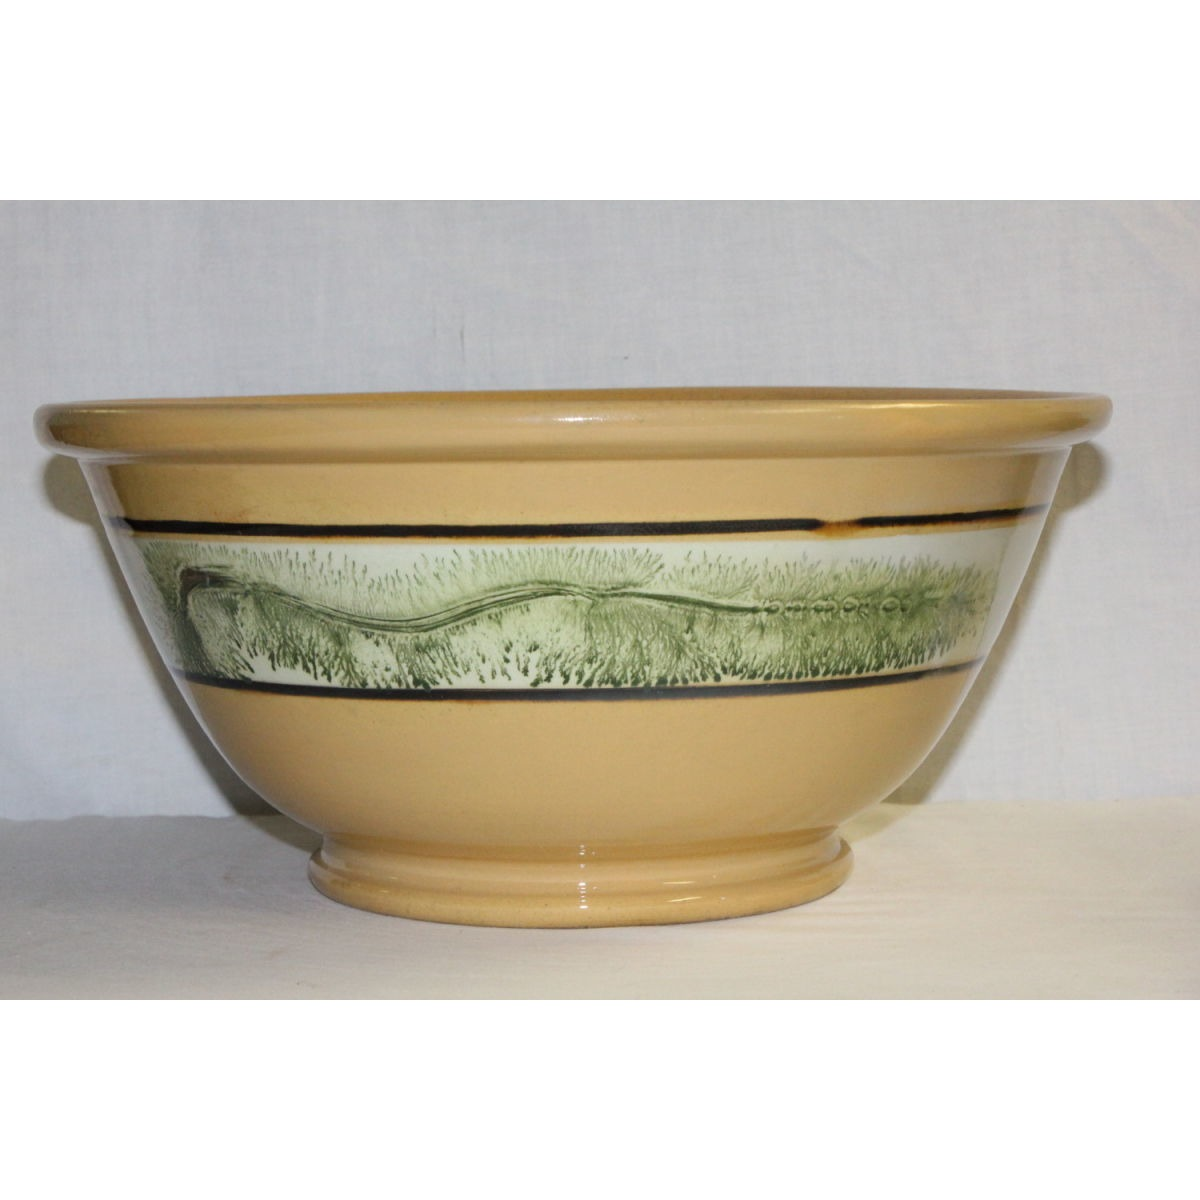 Fabulous Huge Green Seaweed-Decorated Yellowware Bowl